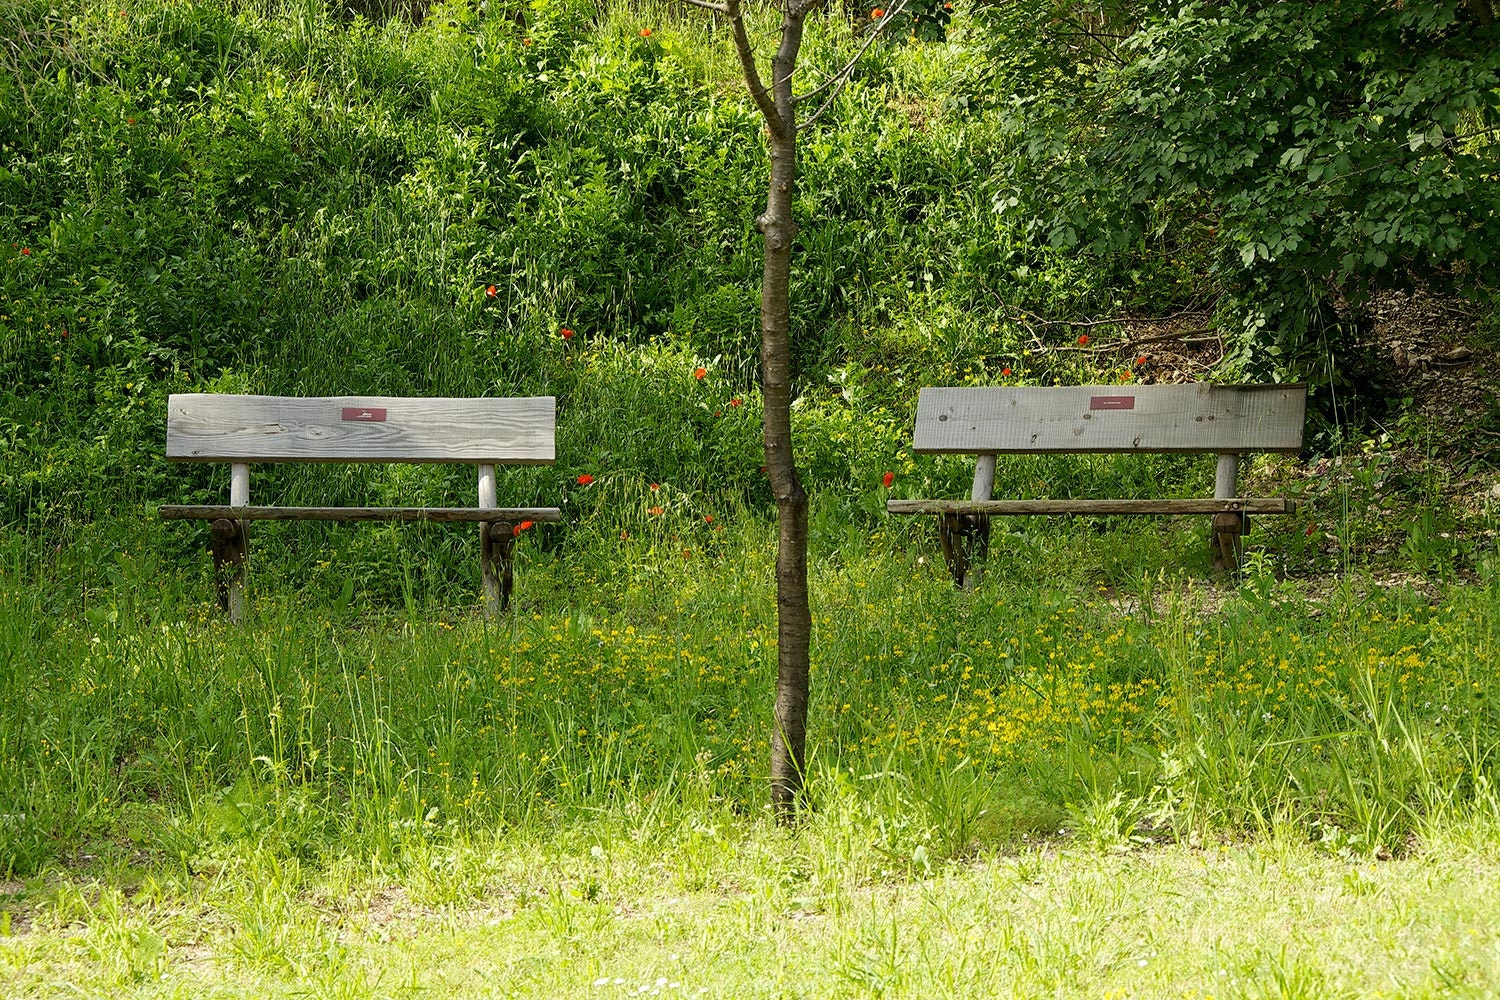 Panchine al Bosco di San Francesco, Assisi (PG)